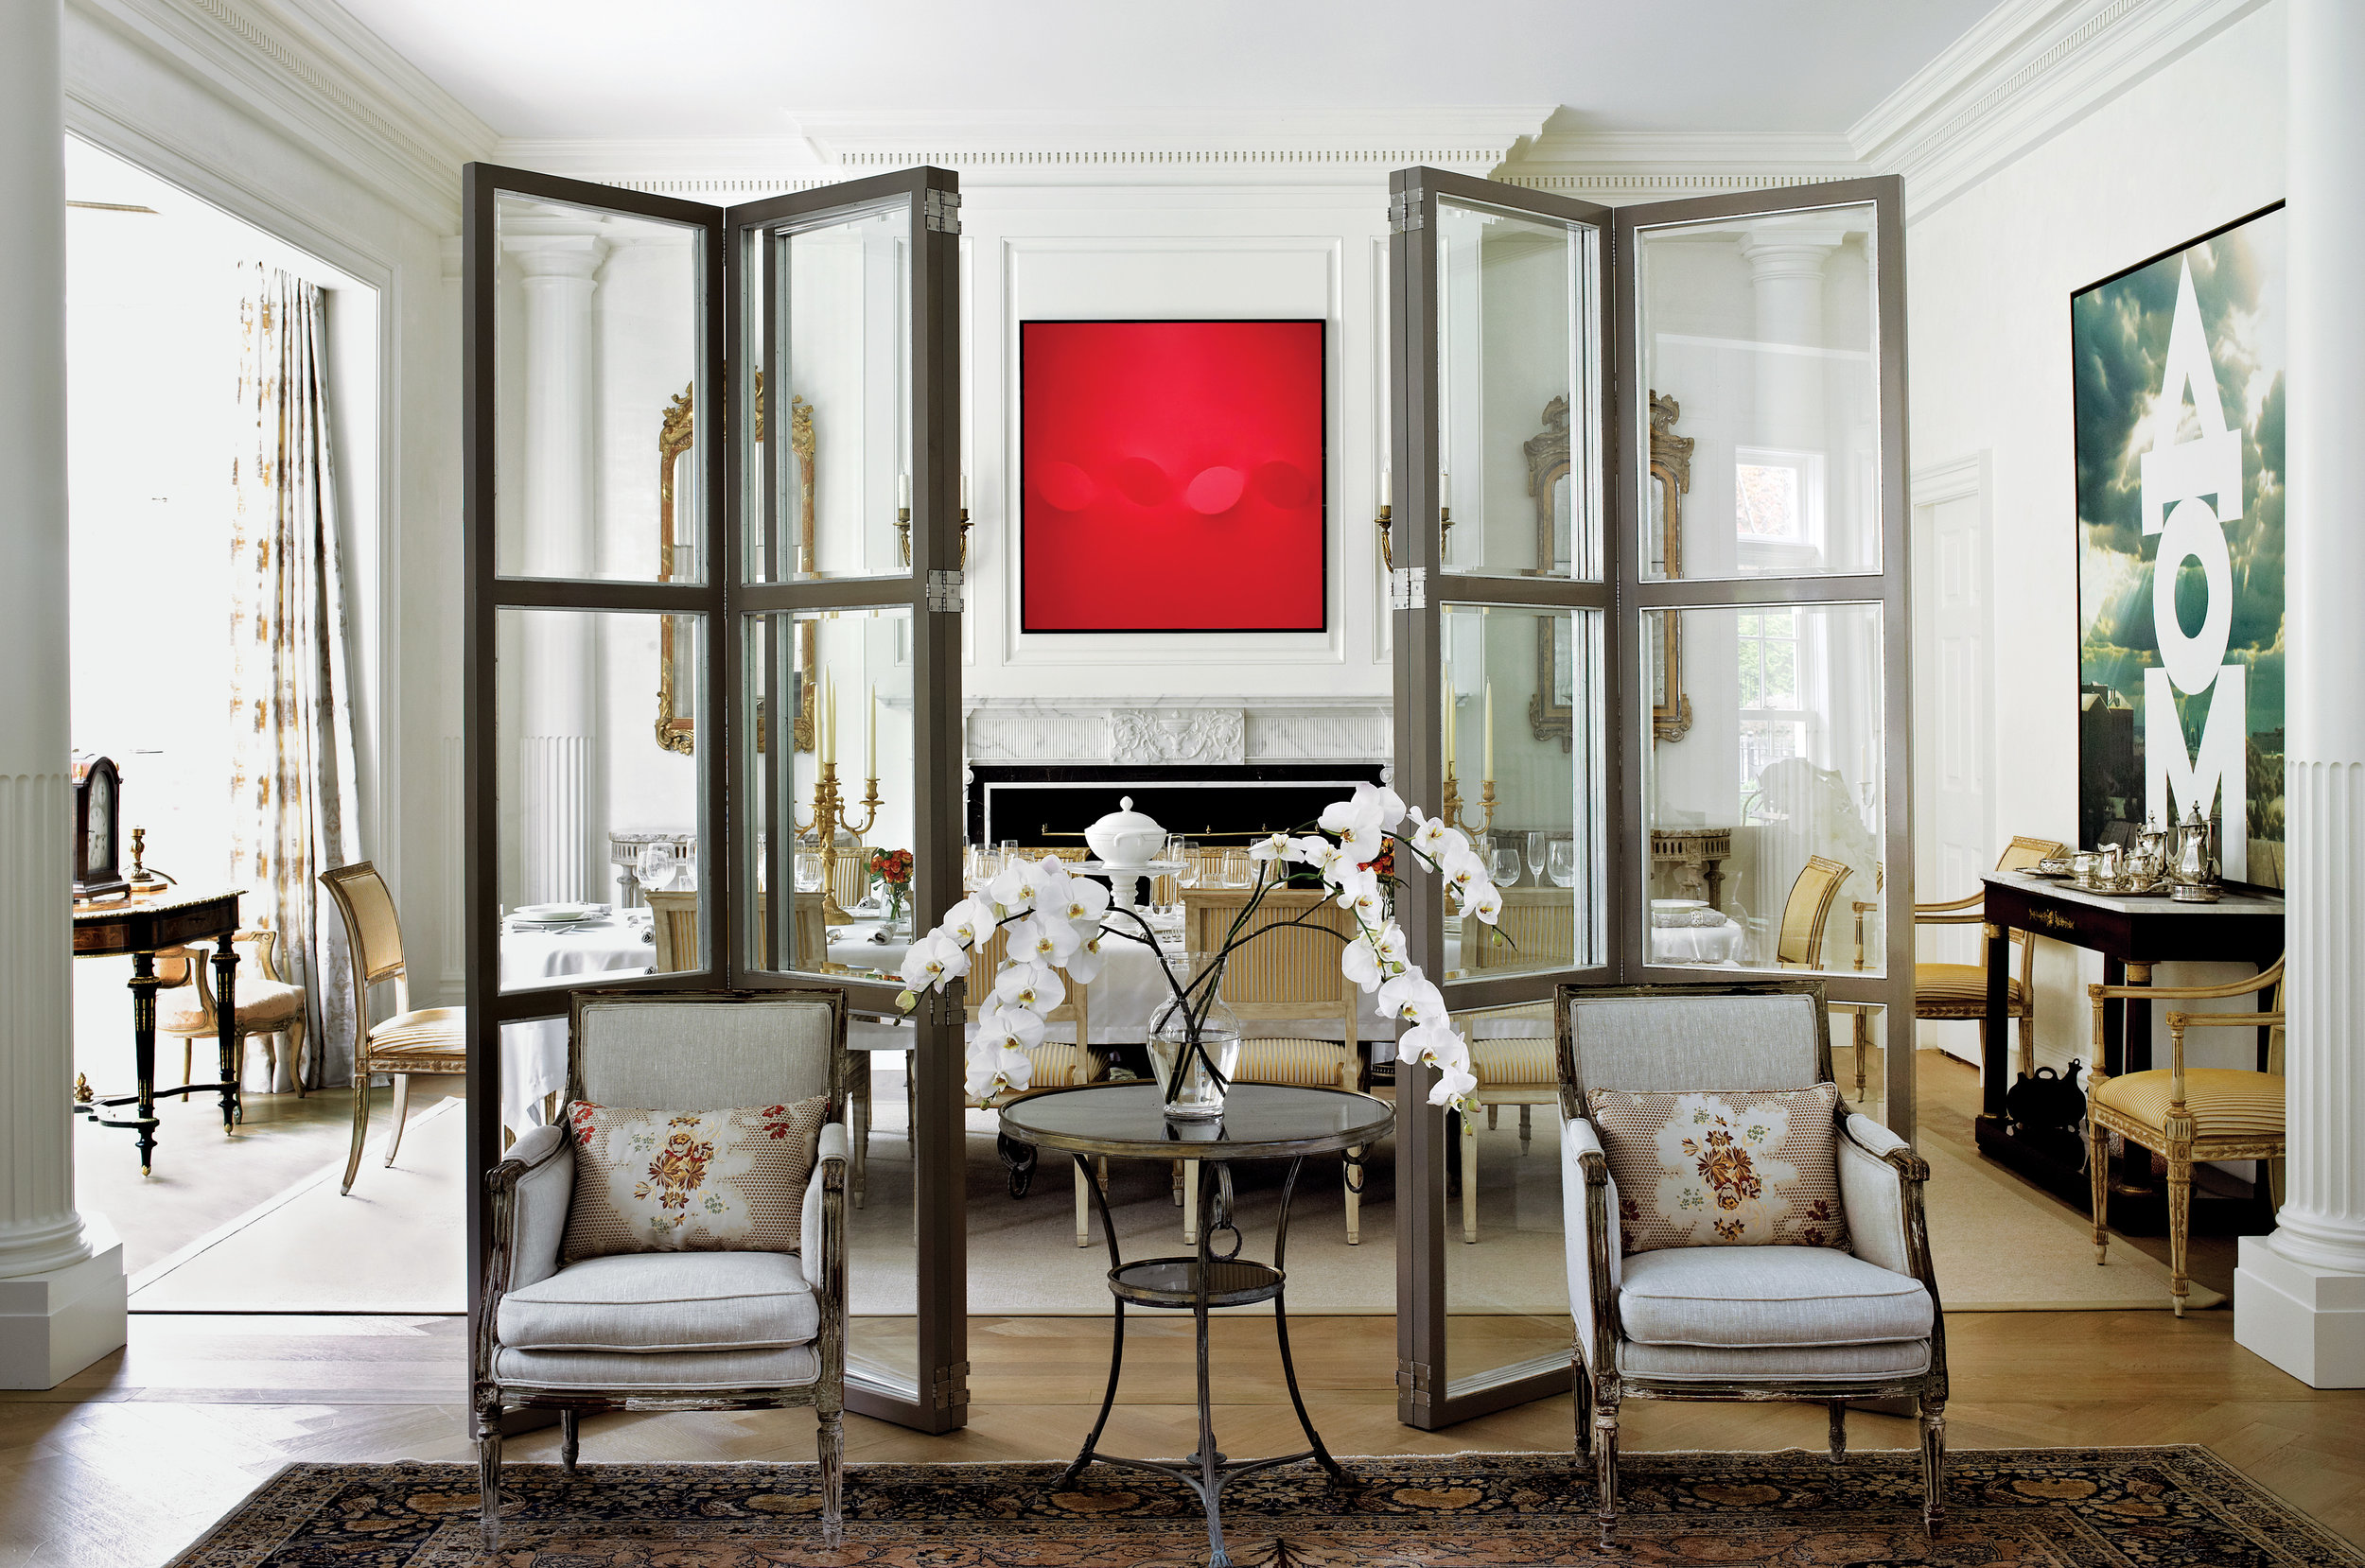 large bifold glass screens separate the living and dining room in this georgian estate. contemporary art contrasts with traditional antiques.